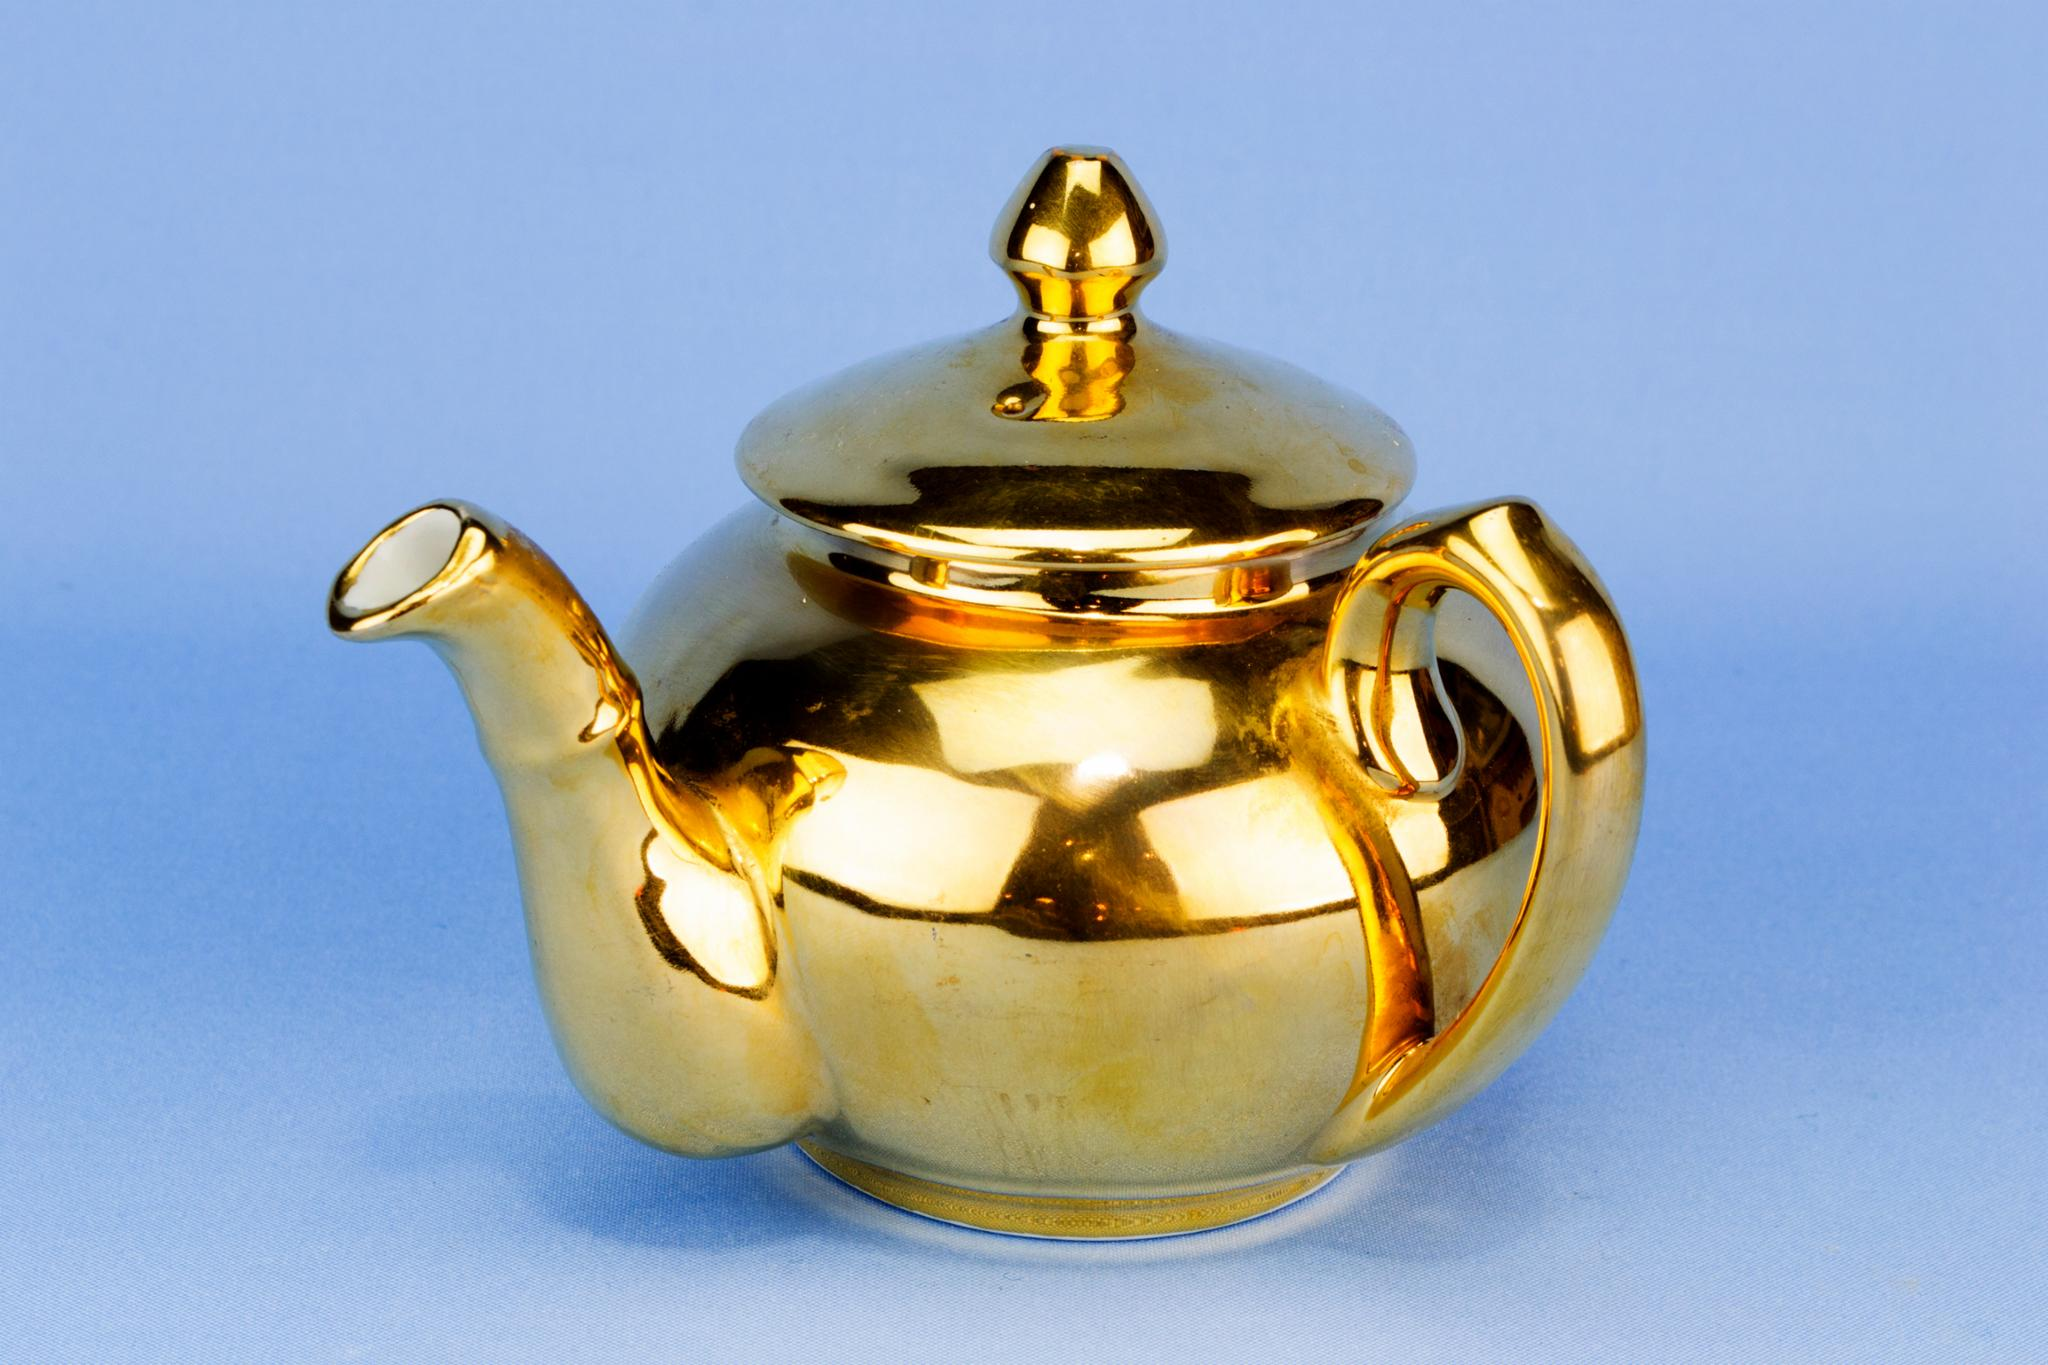 Royal Worcester Small gilded teapot, English 1950s